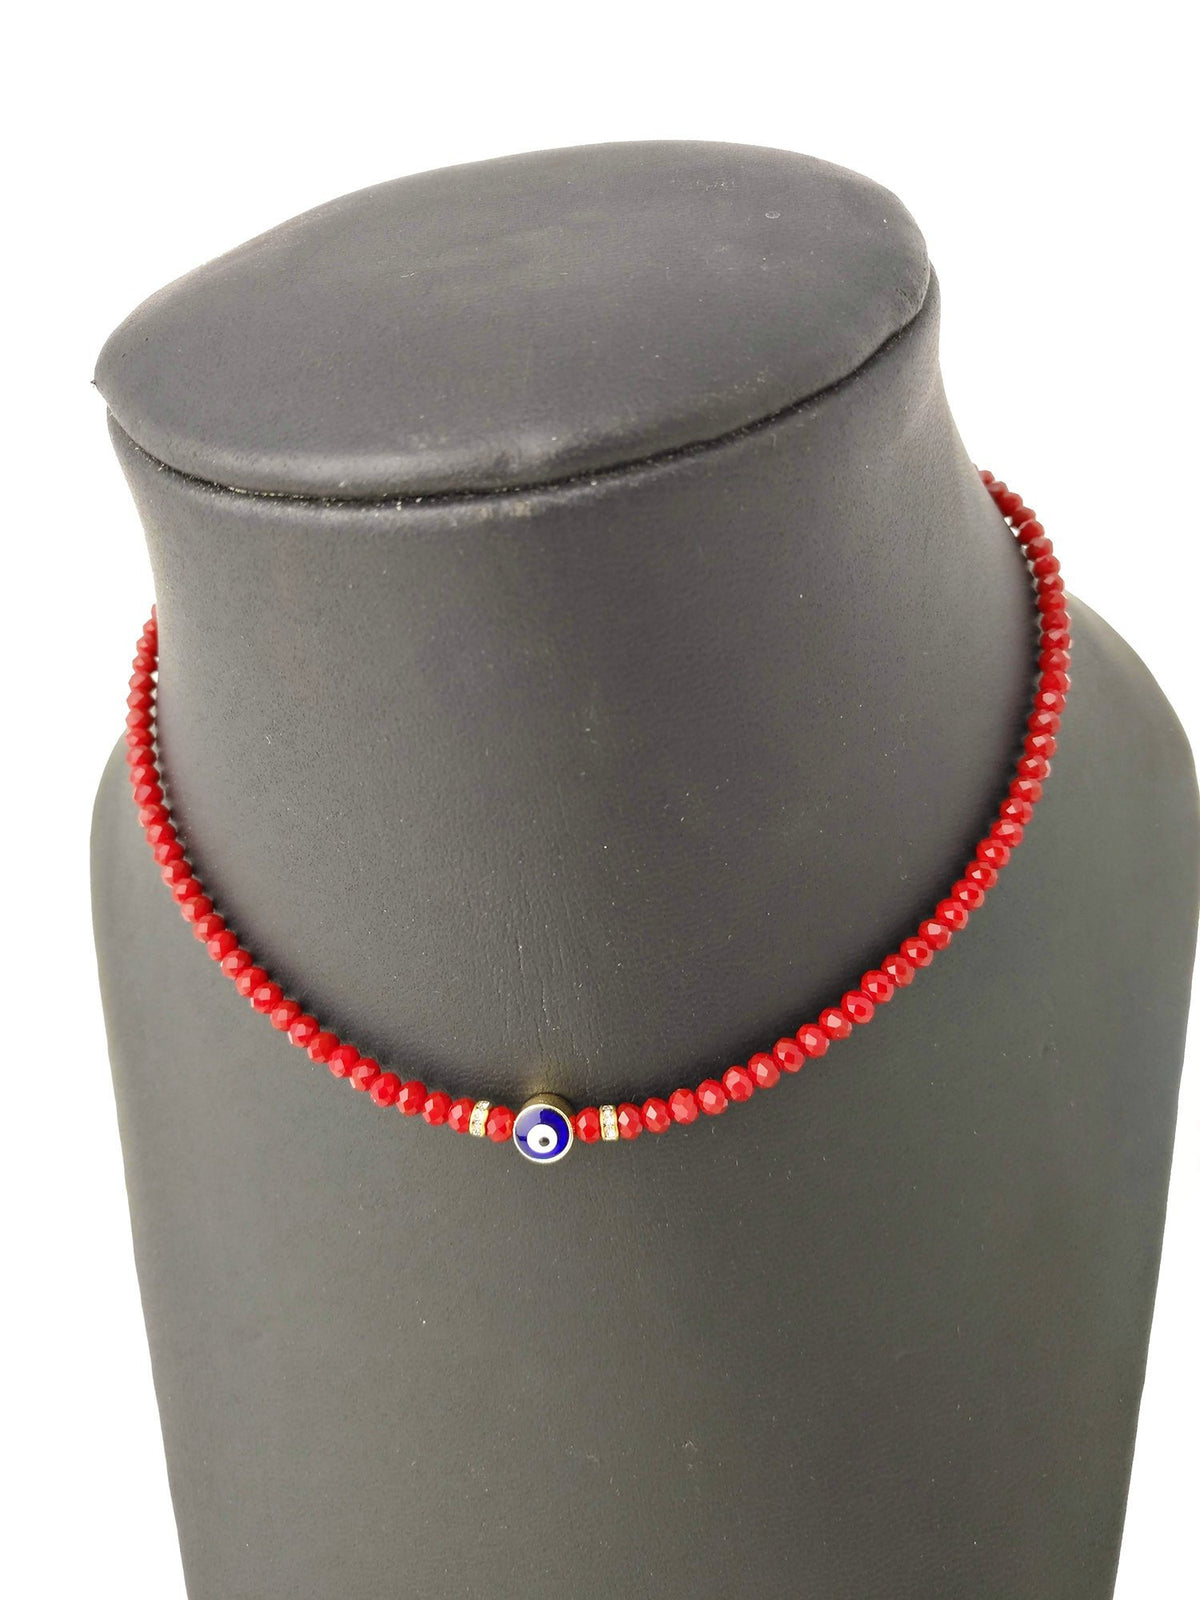 Beaded Evil Eye Necklace - Radiant Red